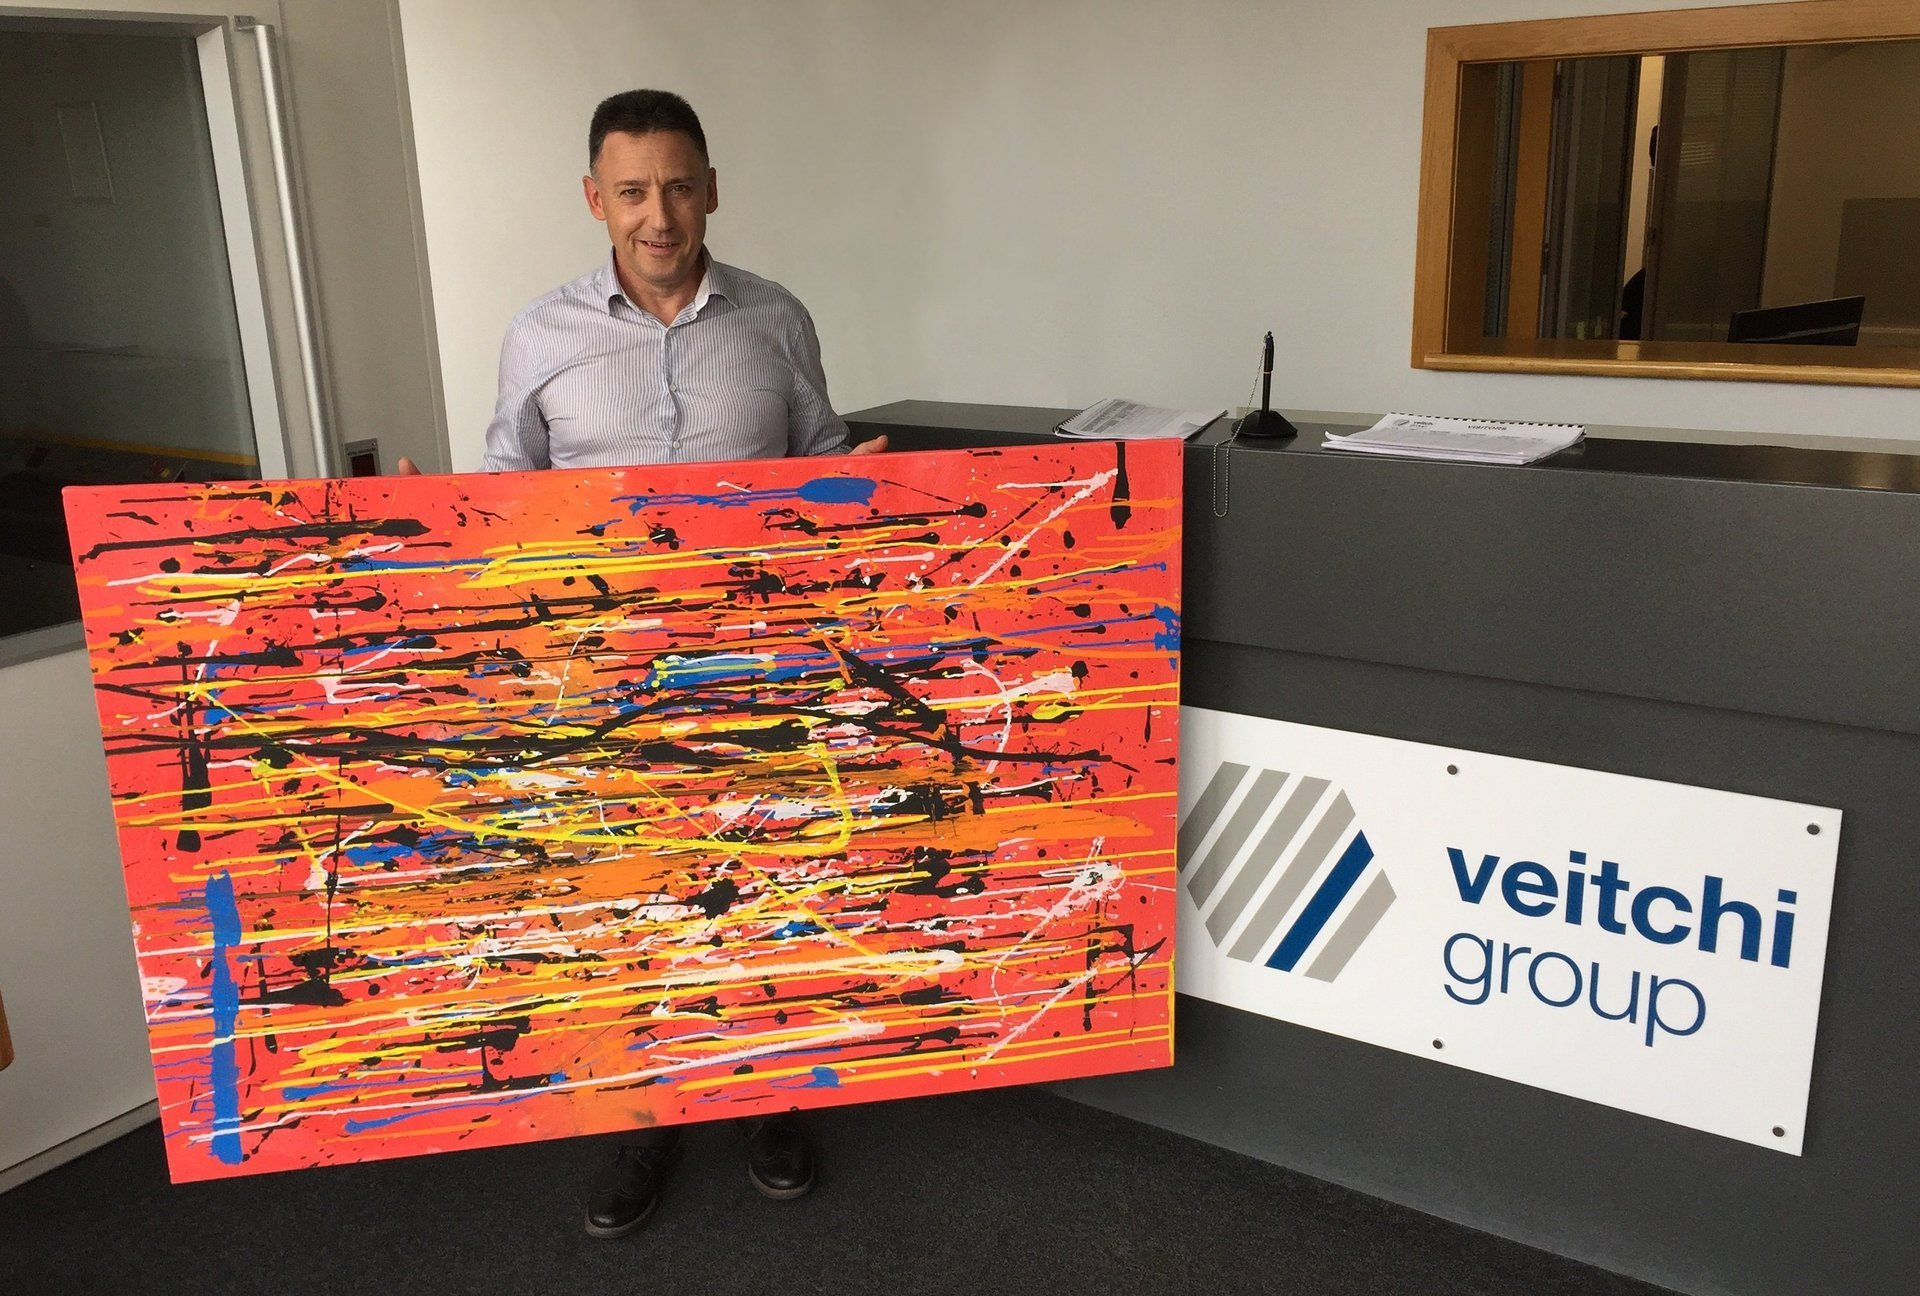 Veitchi Group directors standing next to the charity painting